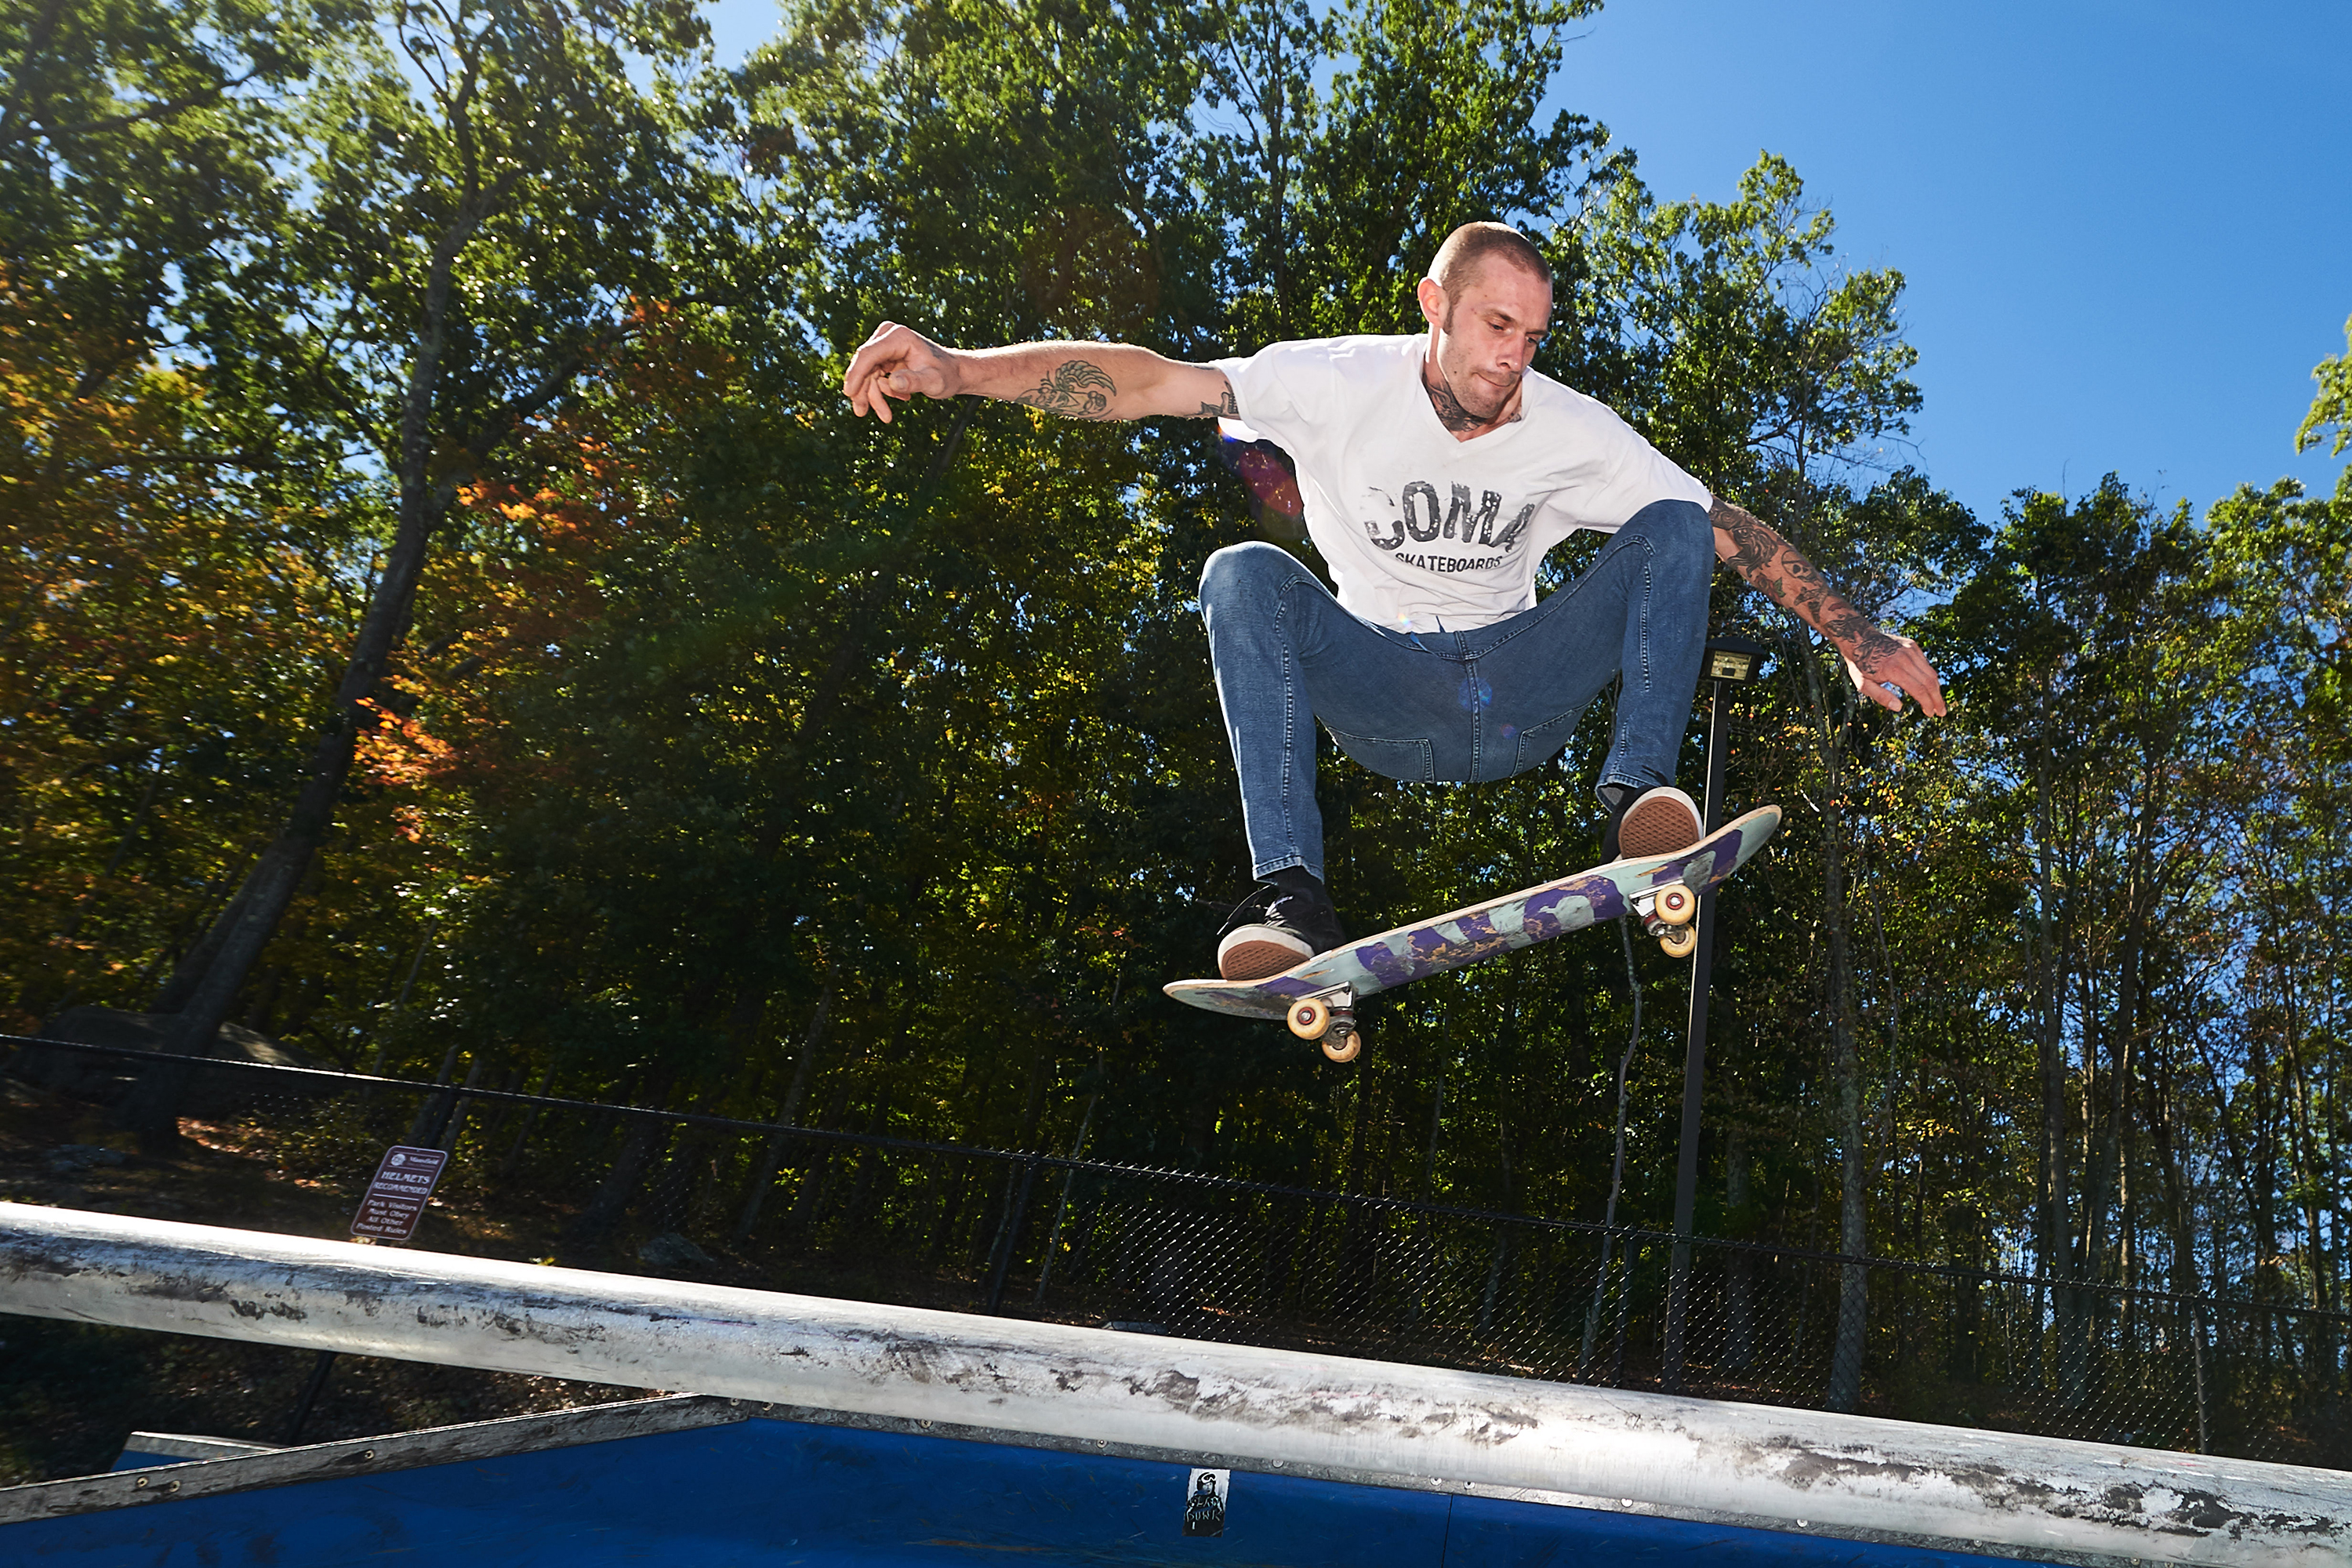 Bent Cordy rides one of his COMA skateboards at the Mansfield Skate Park on Sept. 25, 2016. (Peter Morenus/UConn Photo)